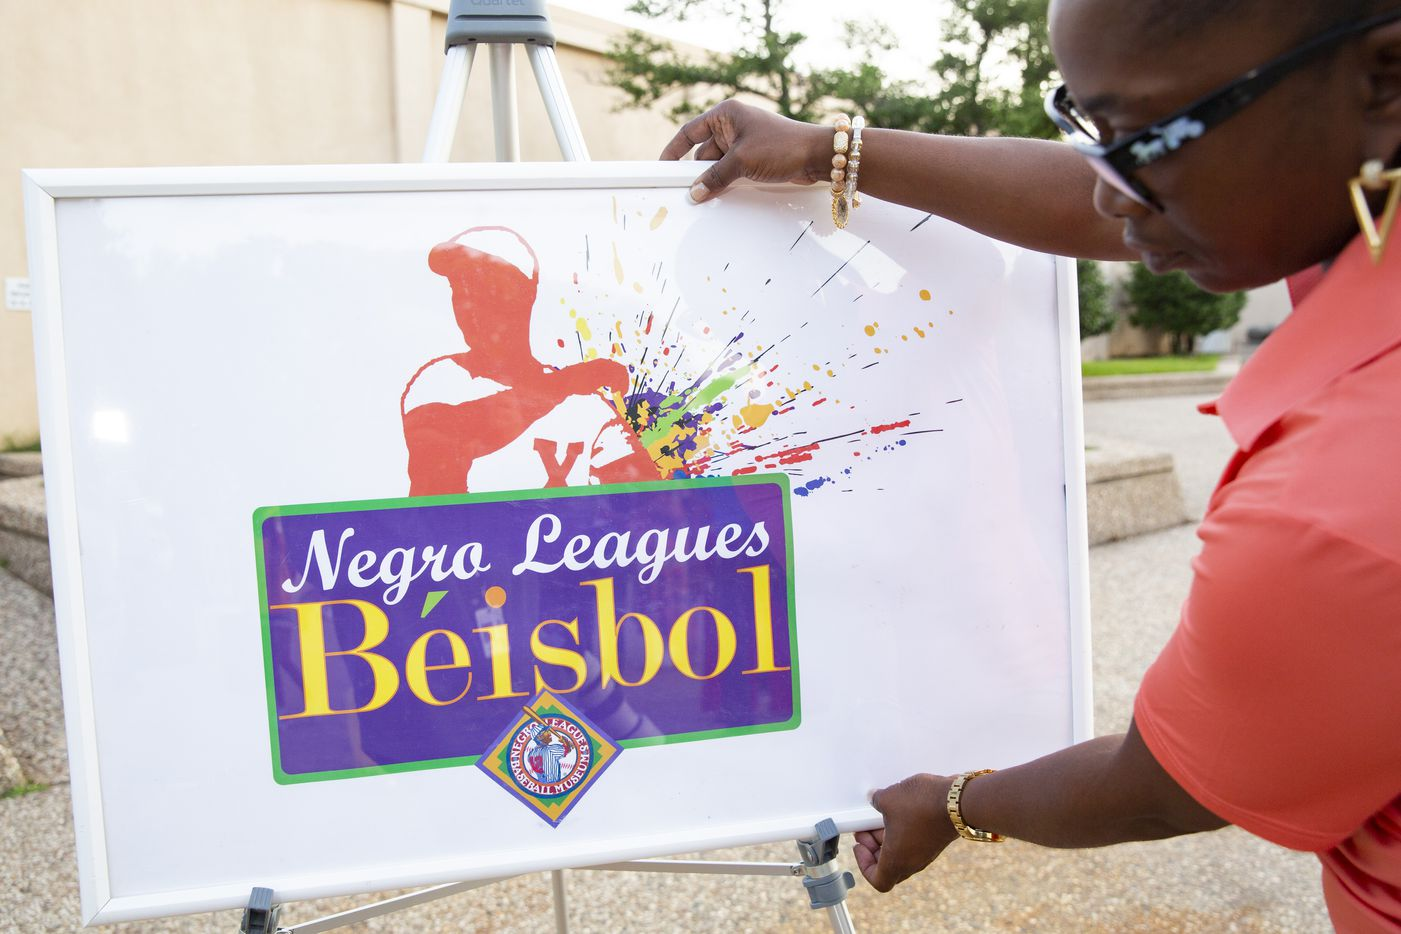 Sherry Blair puts up a sign from the Negro League Baseball exhibit on Friday, June 18, 2021, during a media preview at Fair Park in Dallas. The exhibit opens Saturday as part of the Juneteenth Celebration in Fair Park. (Juan Figueroa/The Dallas Morning News)